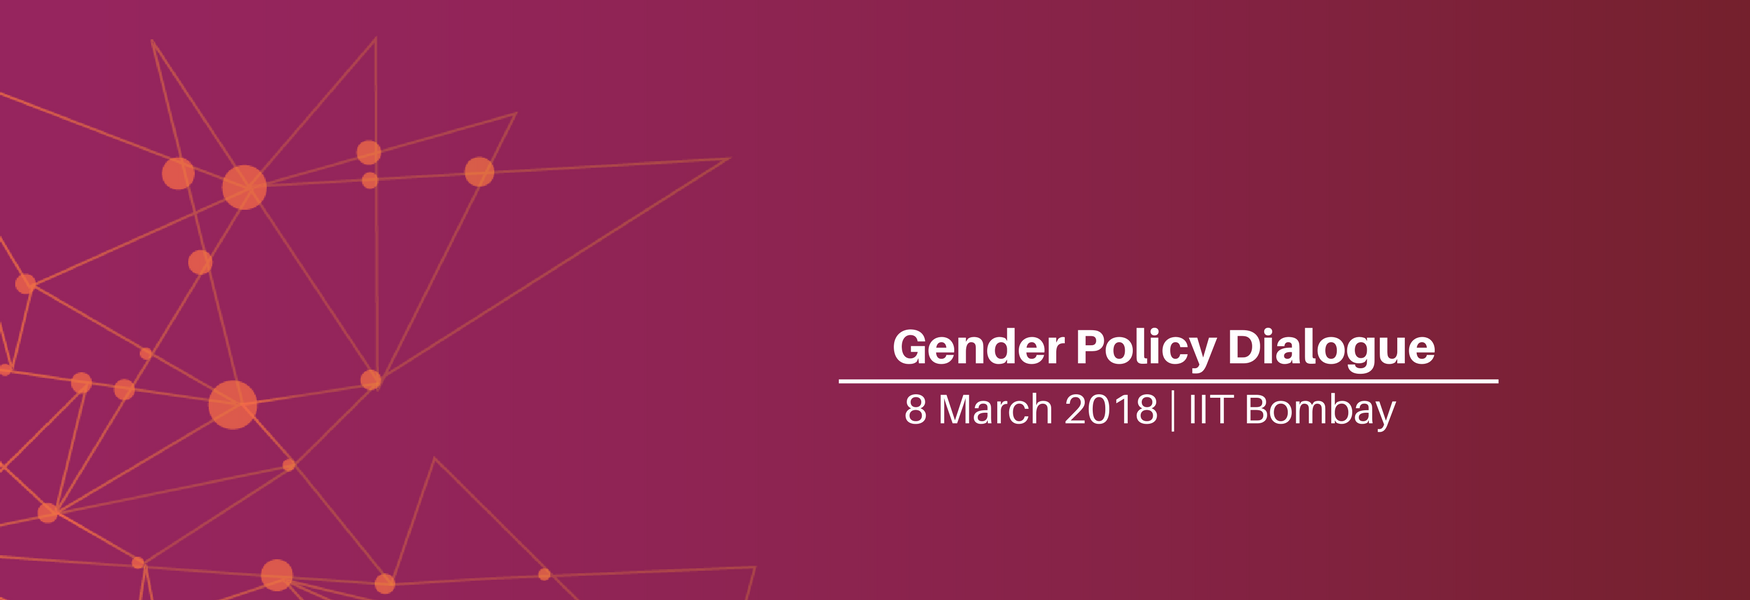 gender-policy-dialogue